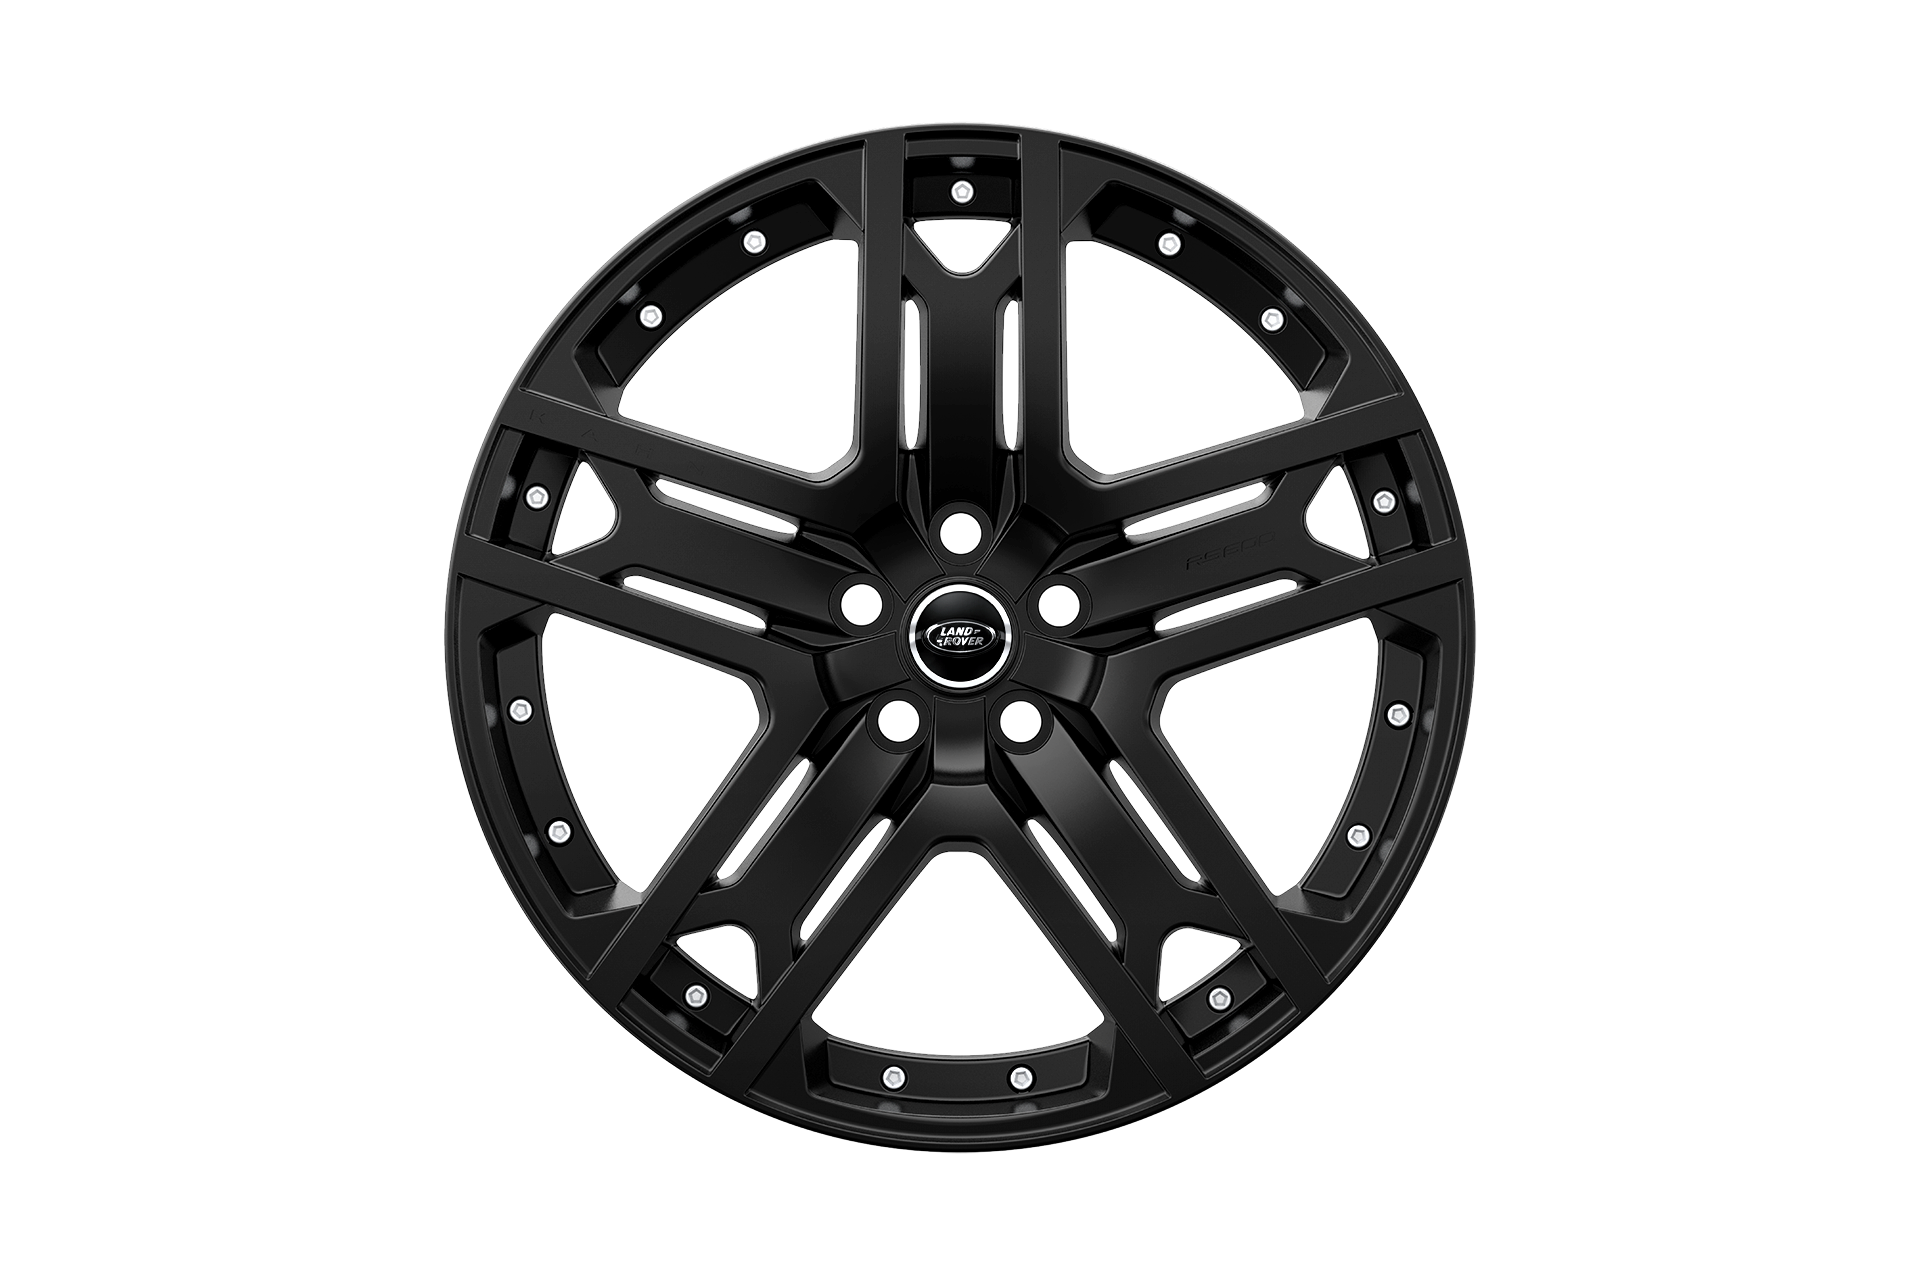 Land Rover Discovery Sport (2016-2019) Rs600 Light Alloy Wheels by Kahn - Image 3891